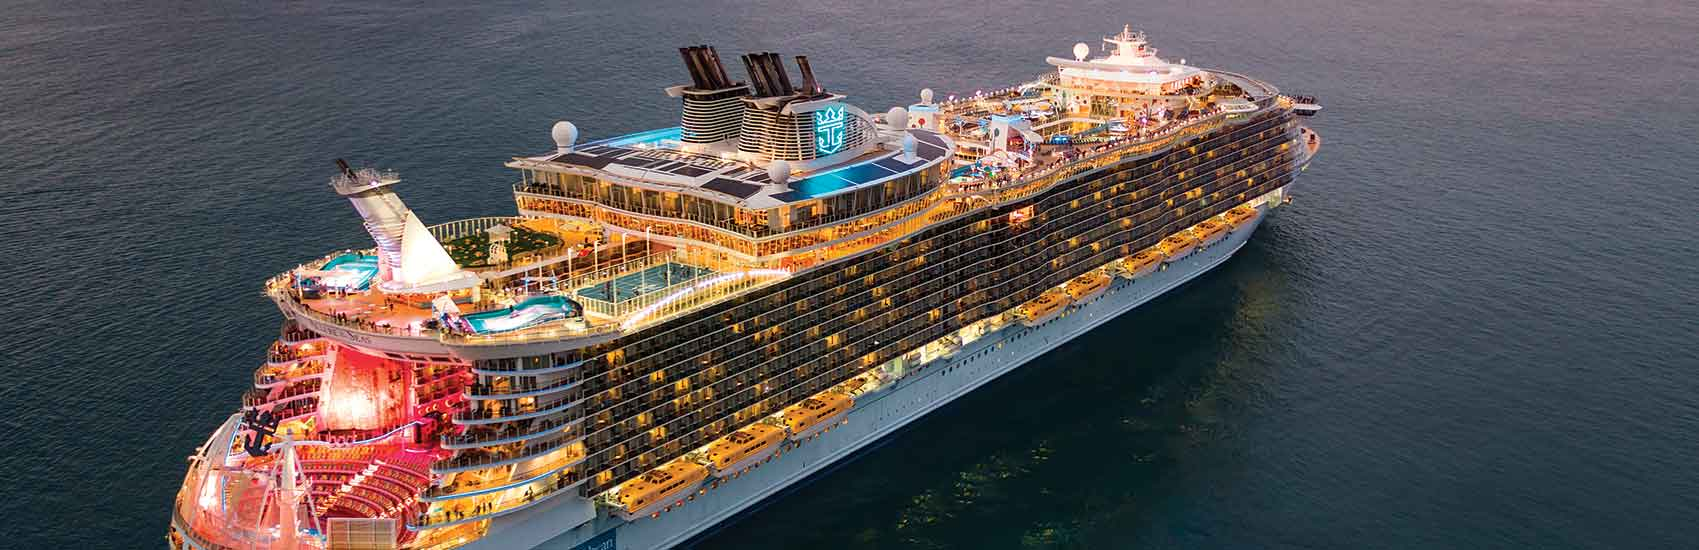 Tips For Picking The Best Stateroom For Your Cruise